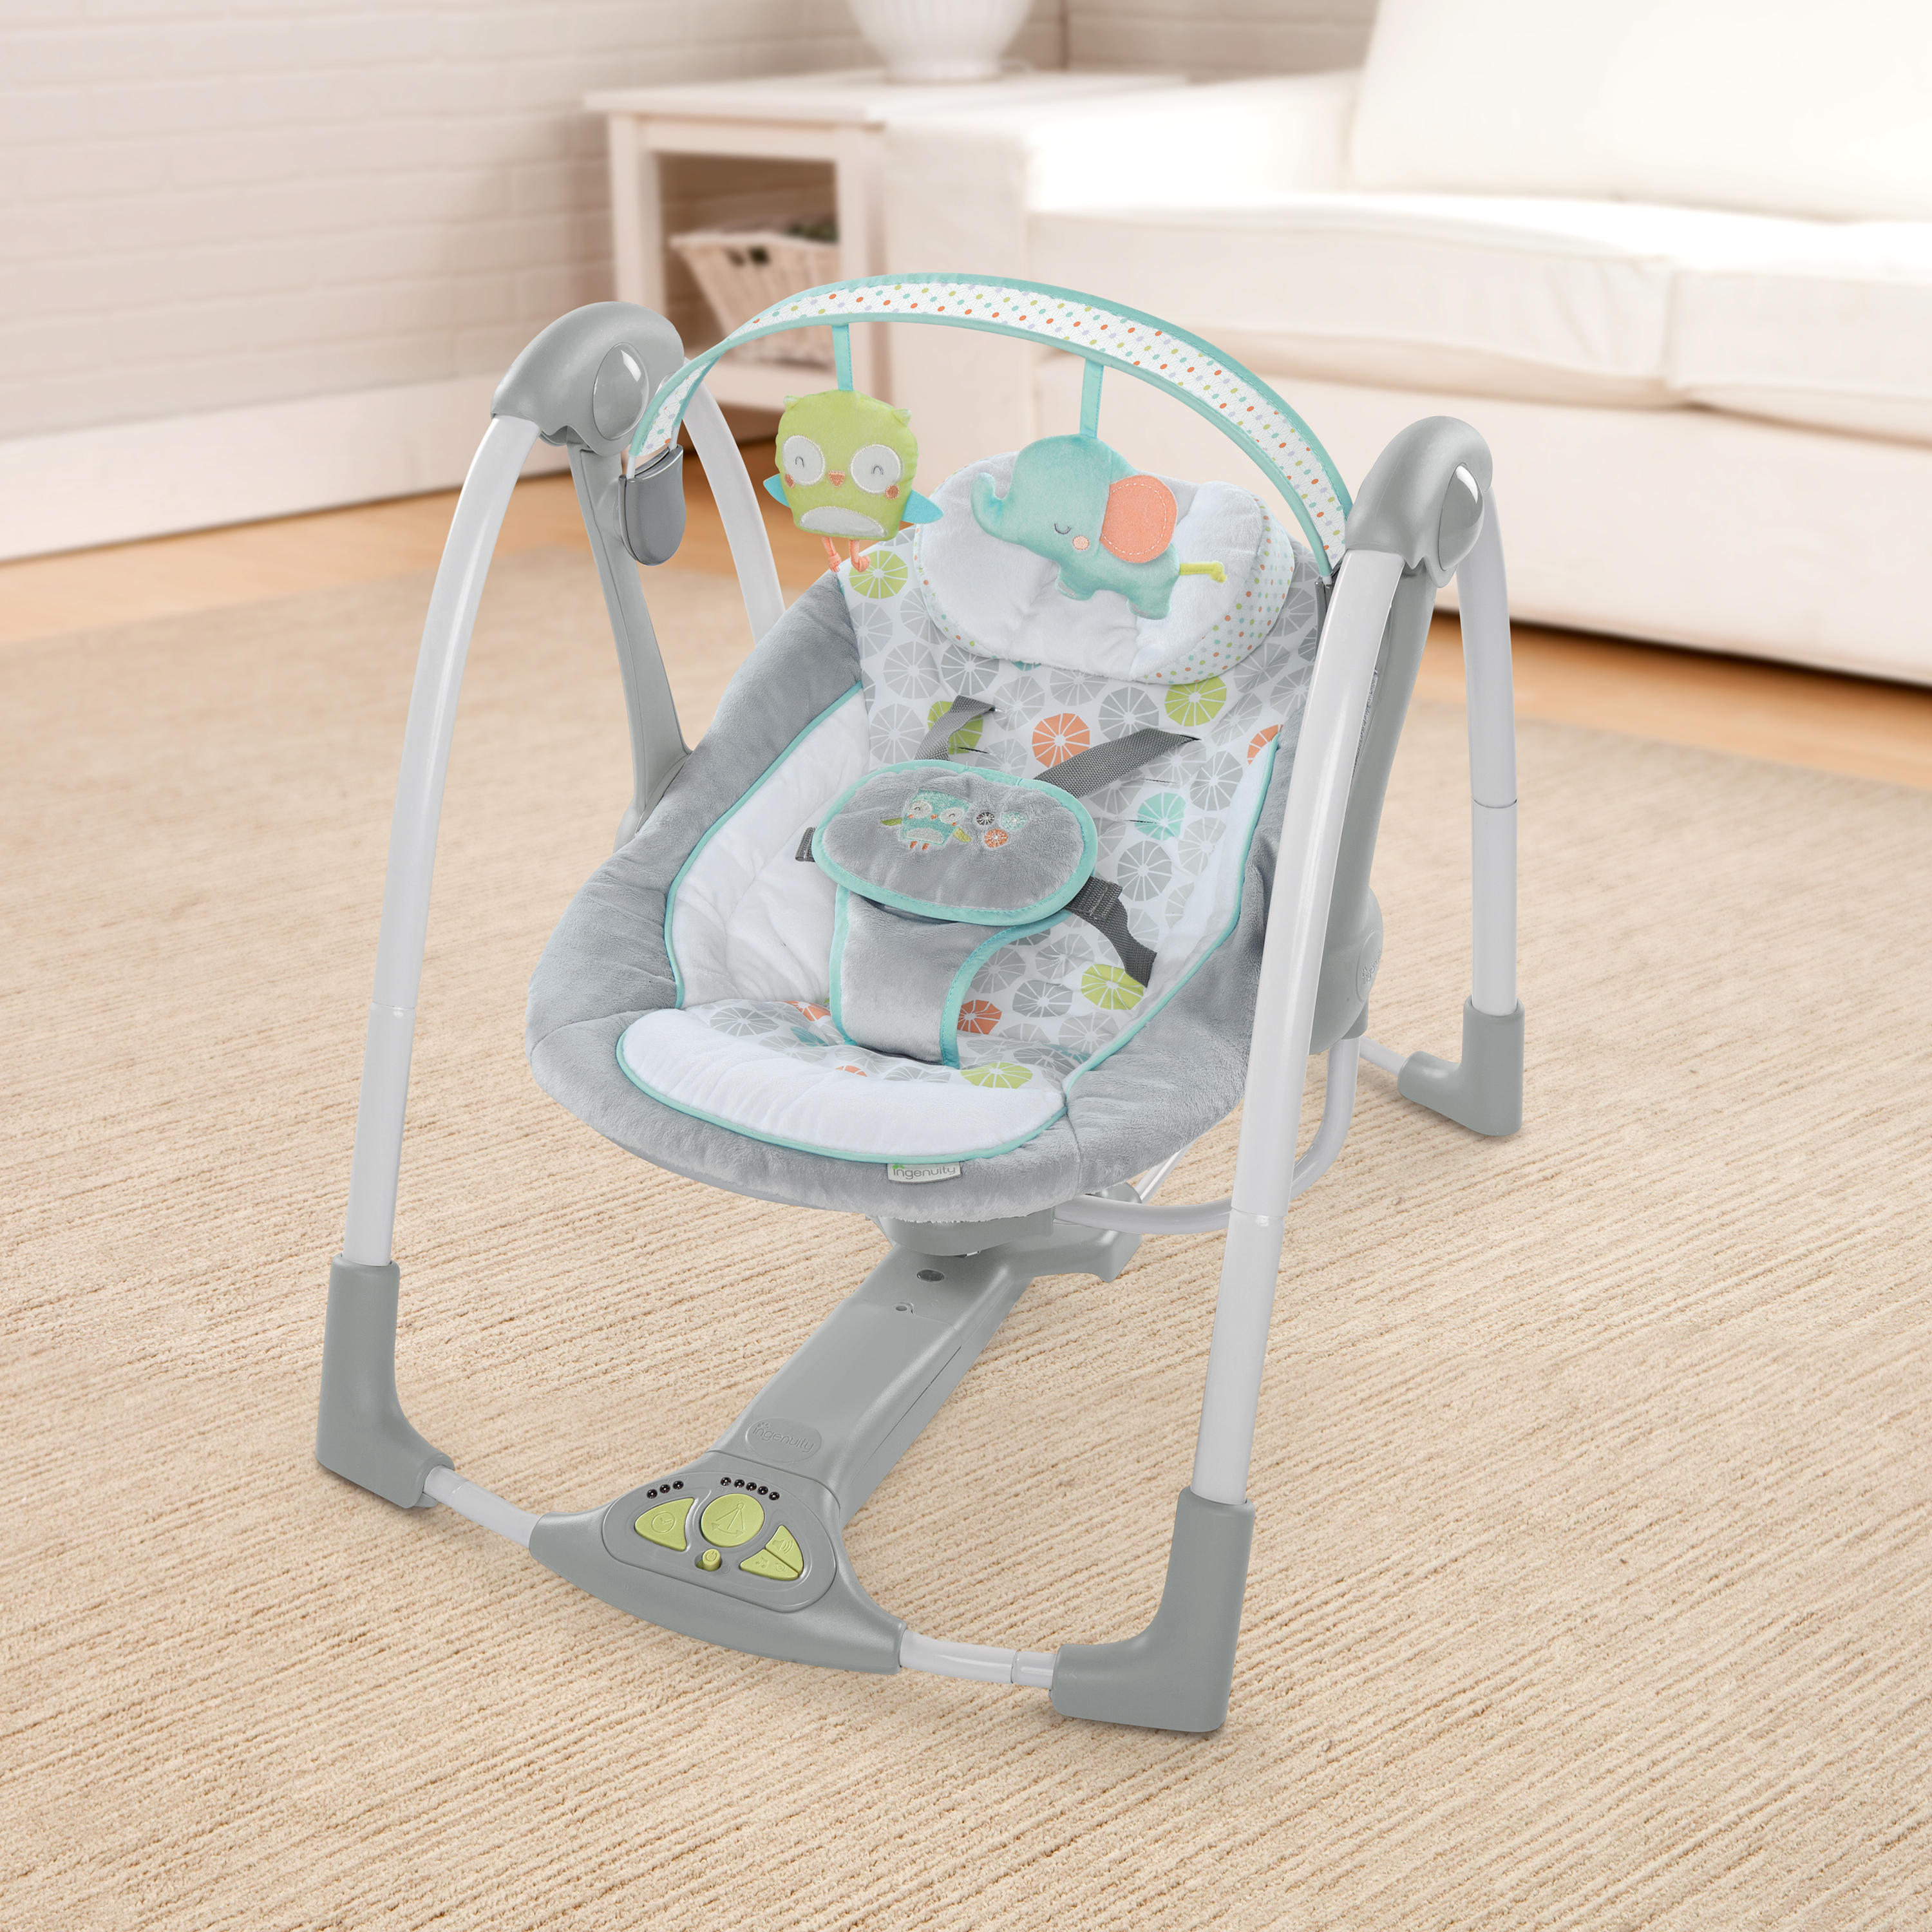 Swing 'n Go Portable Swing™ - Hugs & Hoots™